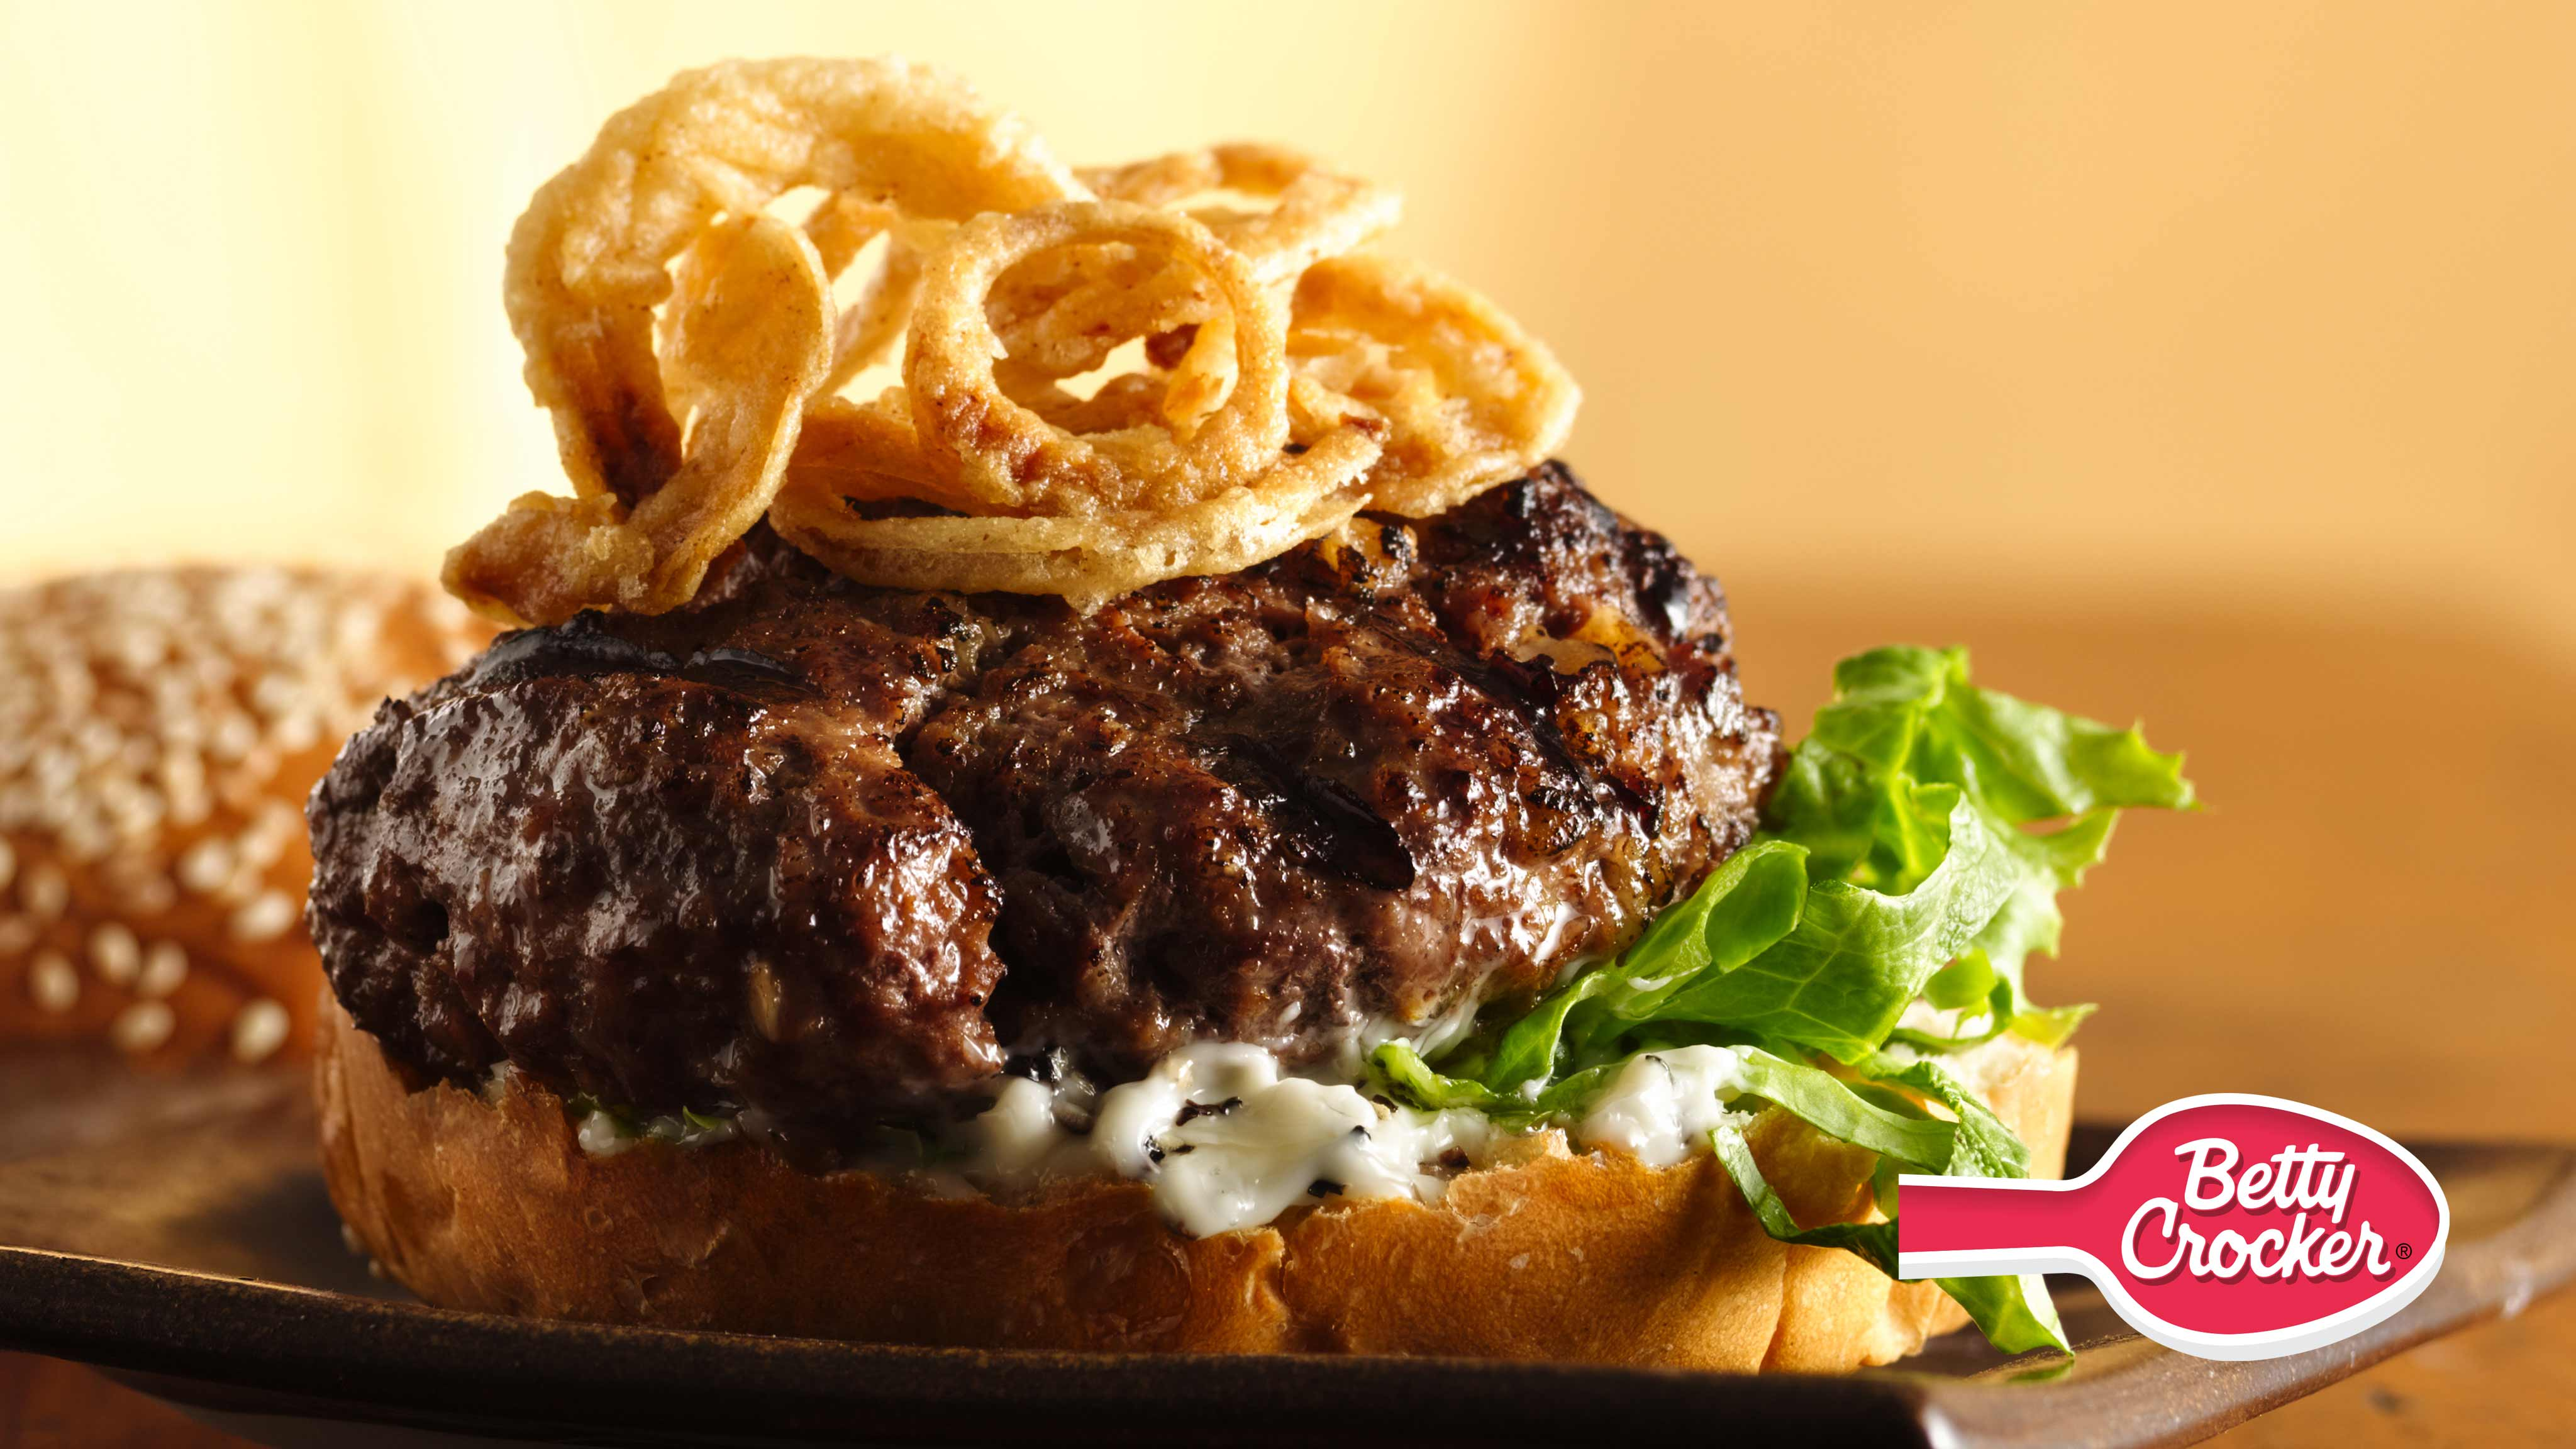 Image for Recipe Killer Steak Burgers with Black Pepper Mayo and Crispy Onions